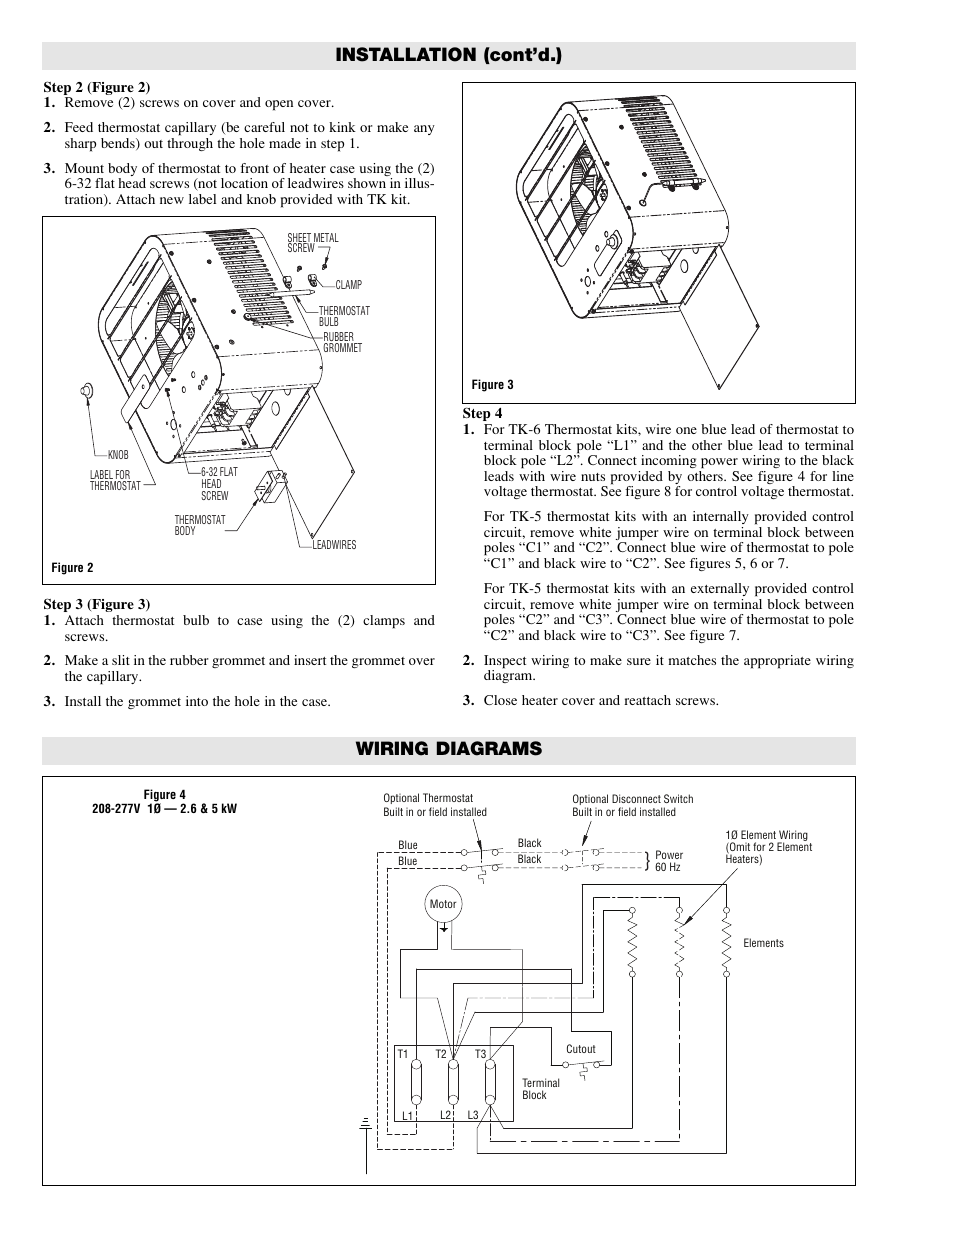 coleman furnace thermostat wiring diagram installation (cont'd.), wiring diagrams | chromalox hvh ... capillary thermostat wiring diagram #12